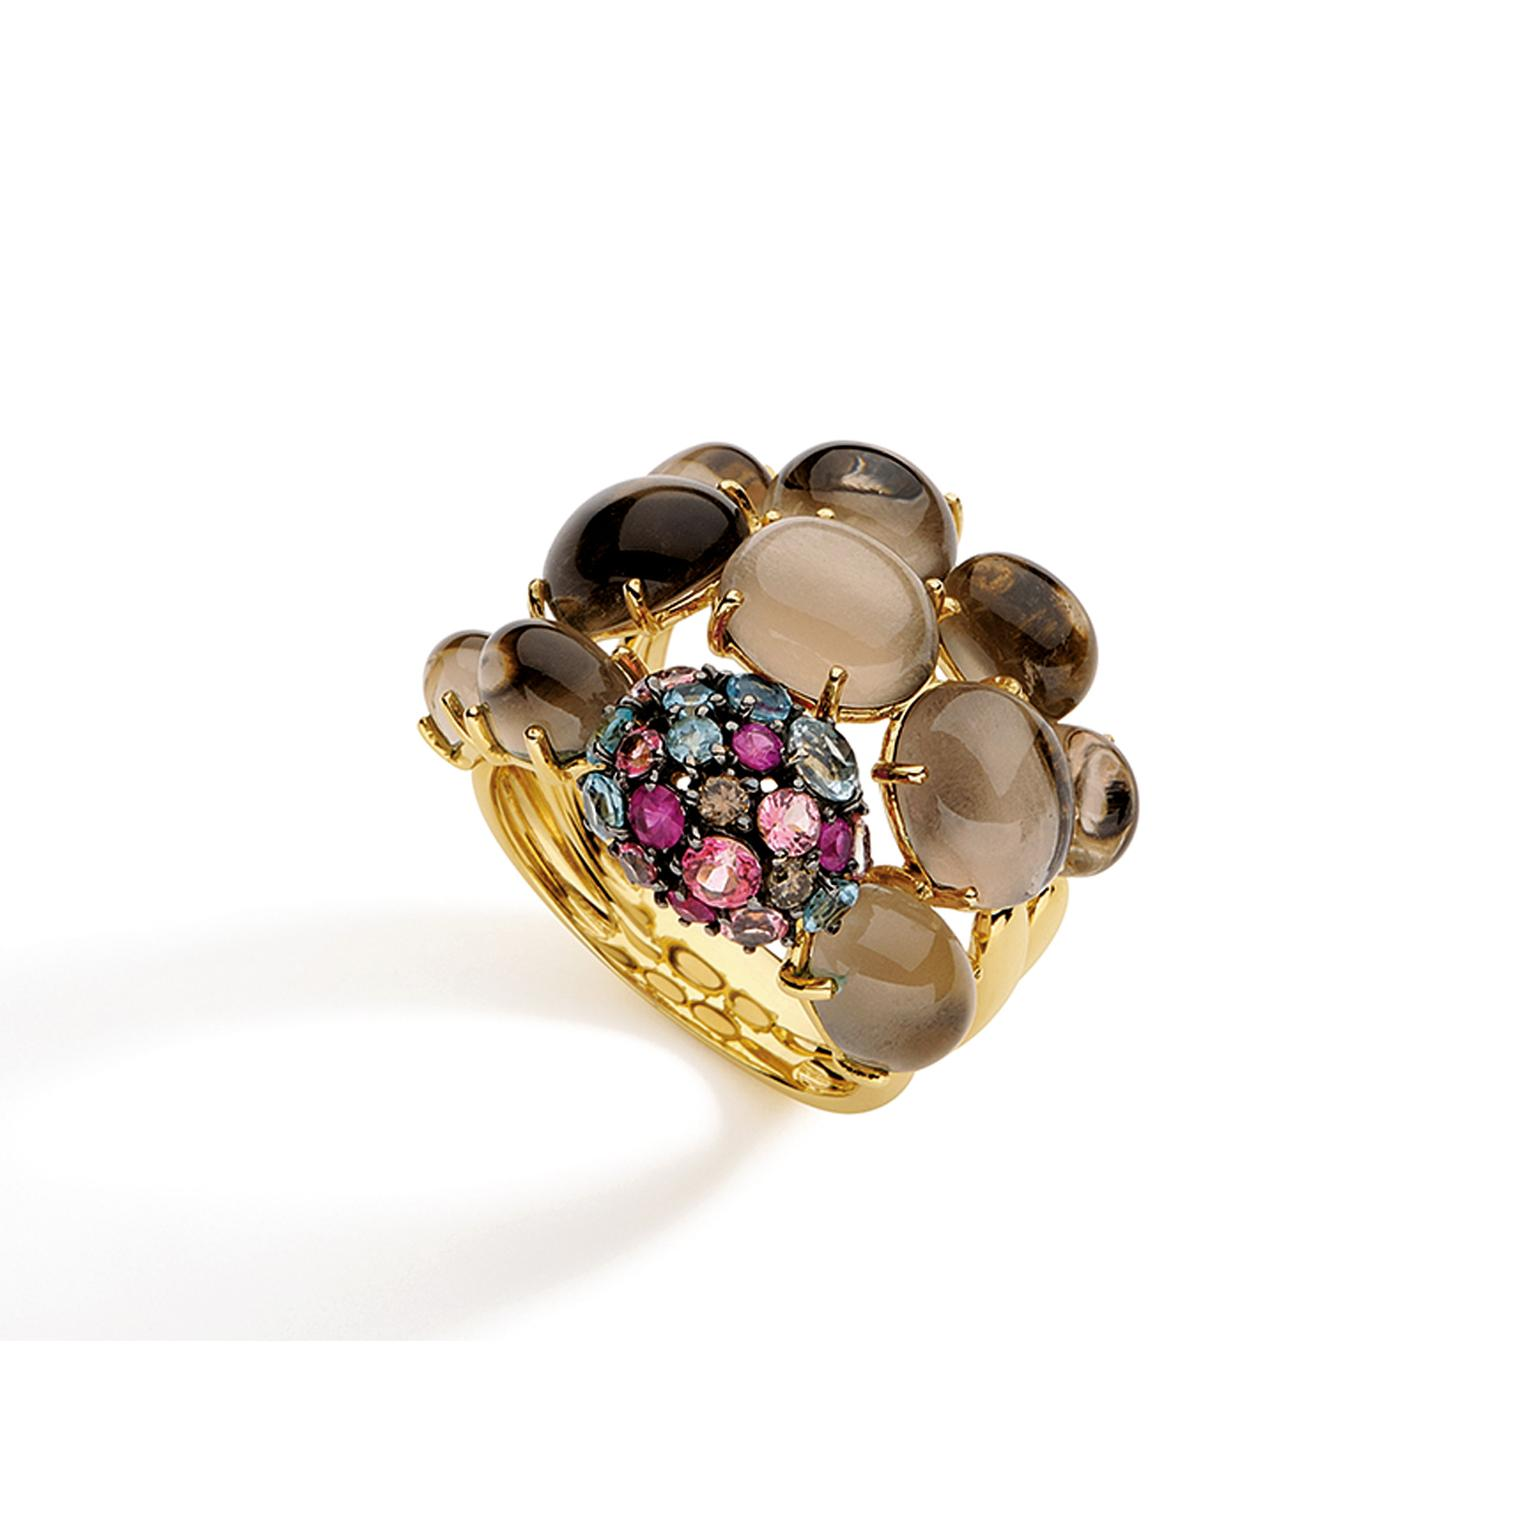 Brumani Baobab smoky quartz ring with coloured gemstones